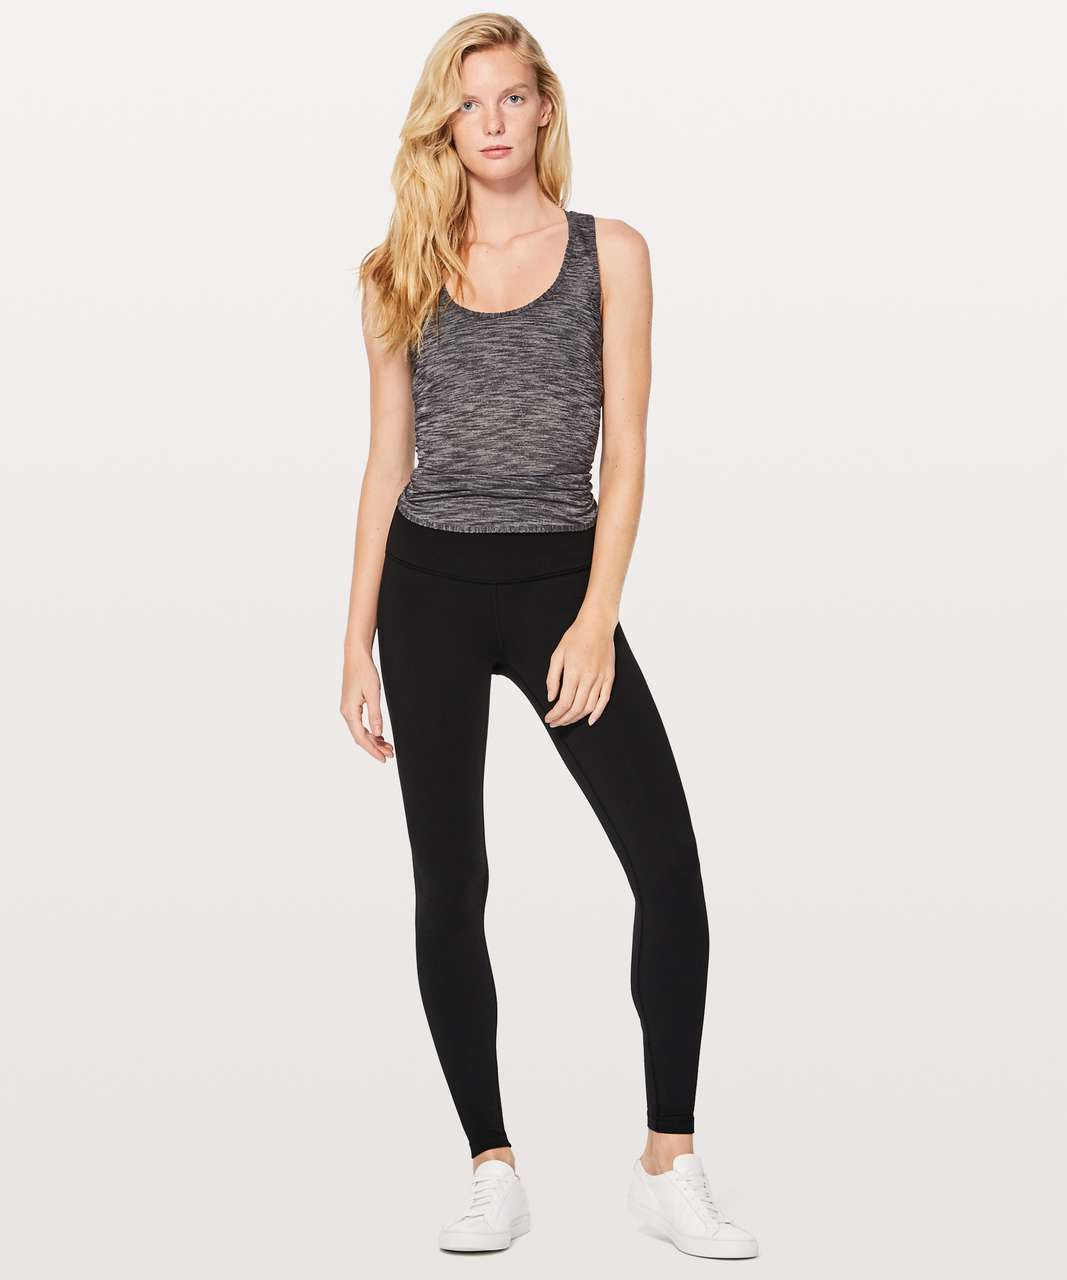 "Lululemon Wunder Under Hi-Rise Tight *Brushed 28"" - Black"